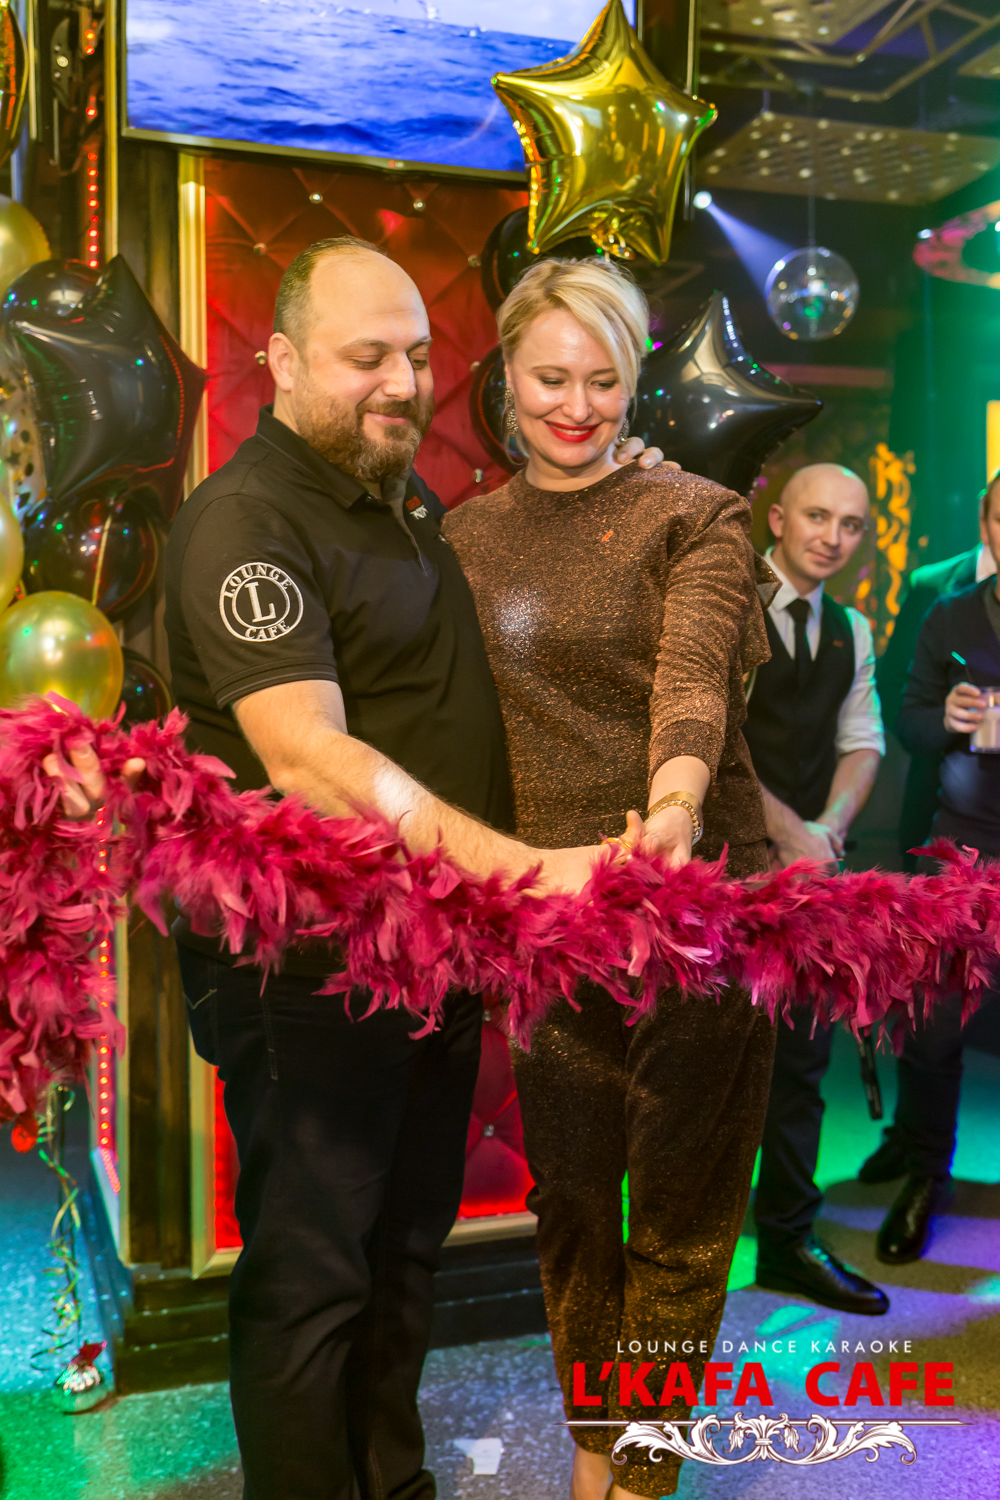 Grand Opening Party - Караоке со звездой